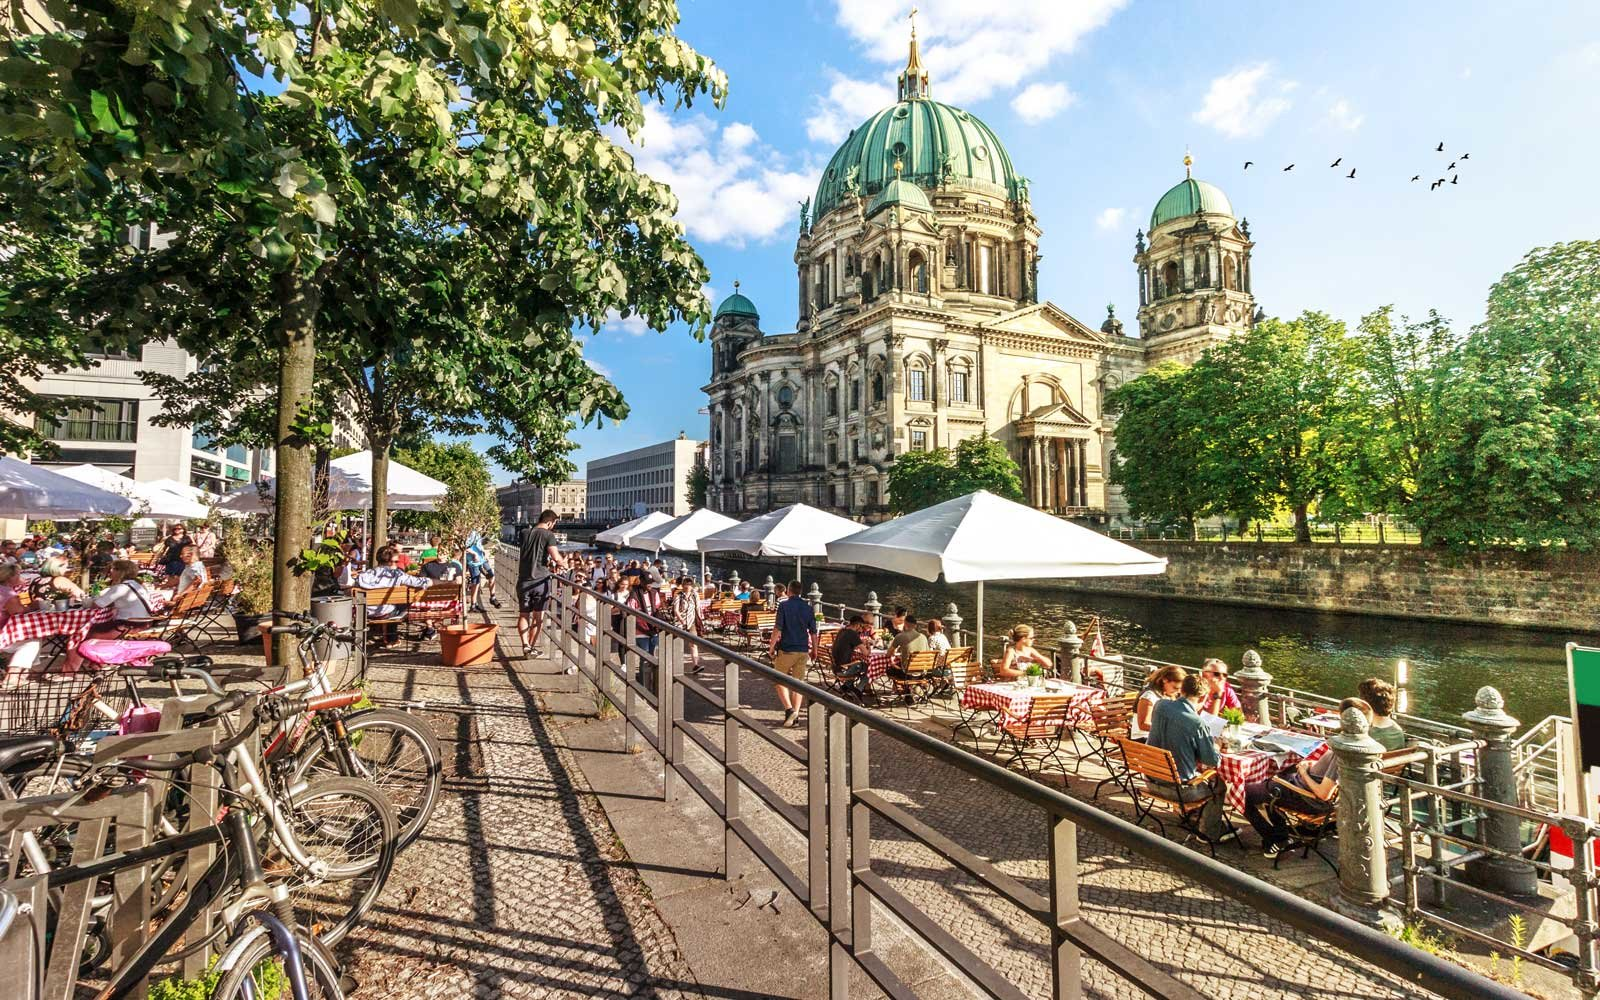 View of Spree River and Berliner Dom, Berlin, Germany